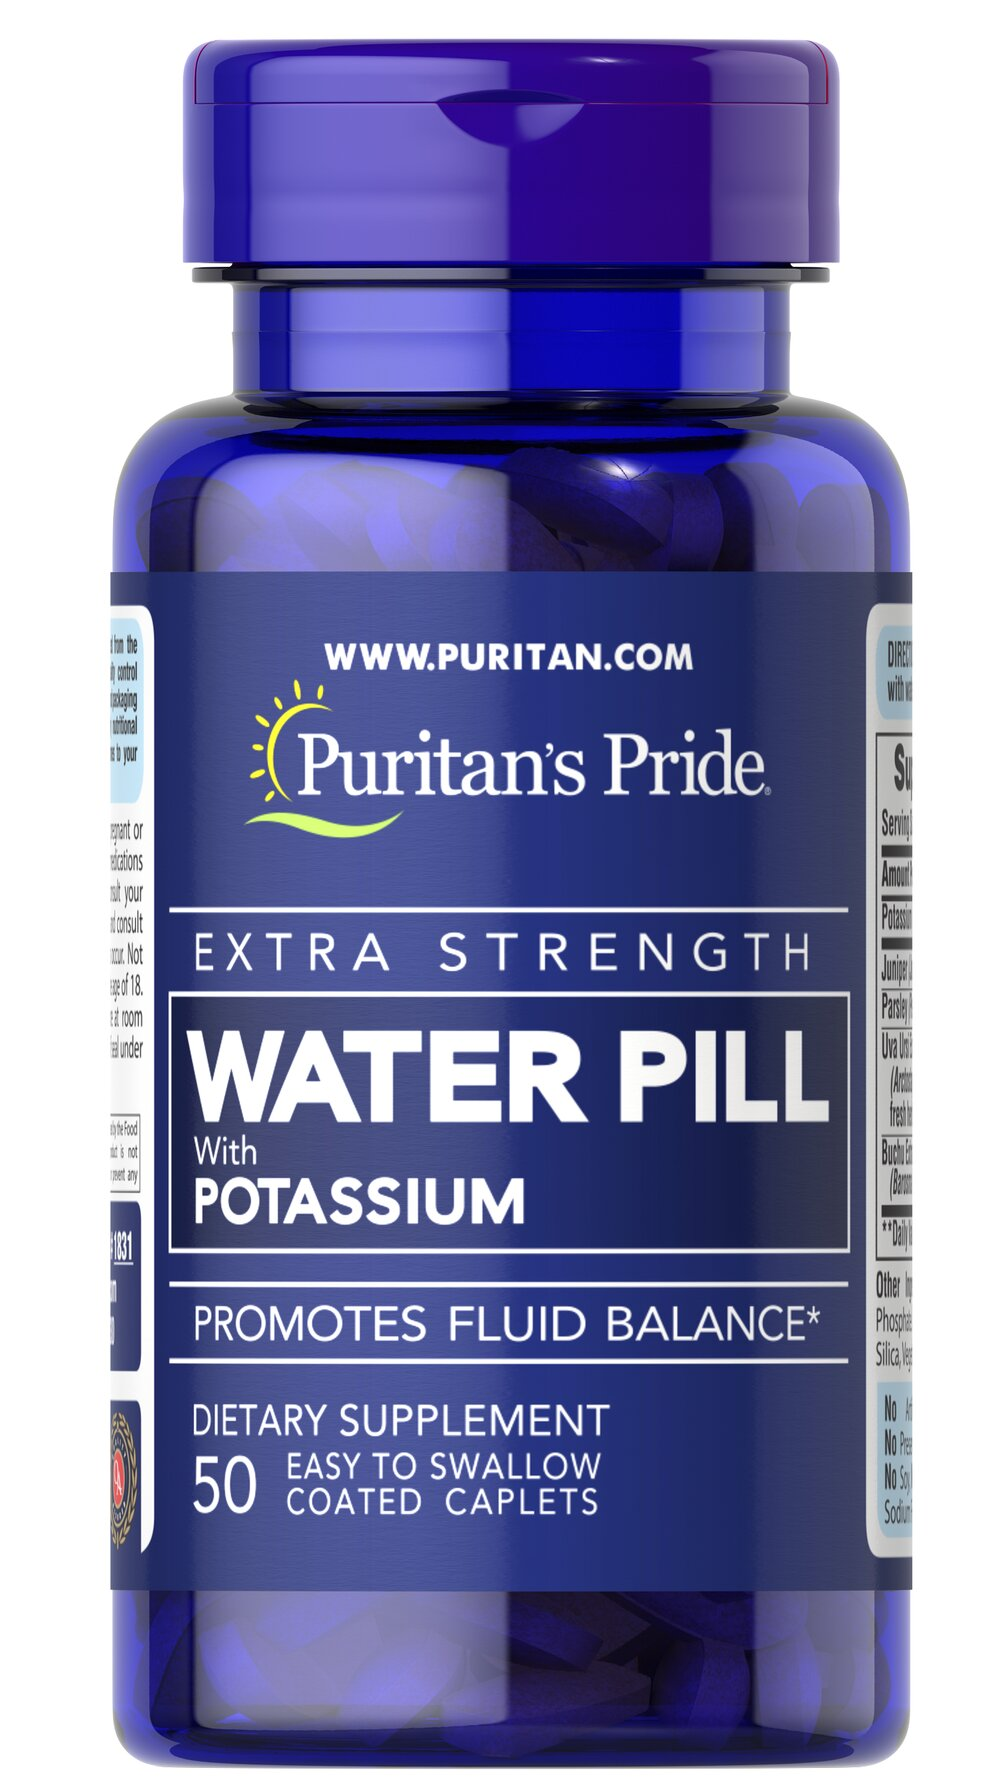 Extra Strength Water Pill™ <p>Promotes Fluid Balance**</p><p>This product contains the essential mineral Potassium, which works with sodium to regulate the body's water balance.** EXTRA STRENGTH WATER PILL™ Tablets also contain Uva Ursi, Buchu, Juniper and Parsley.</p> 50 Caplets  $6.99